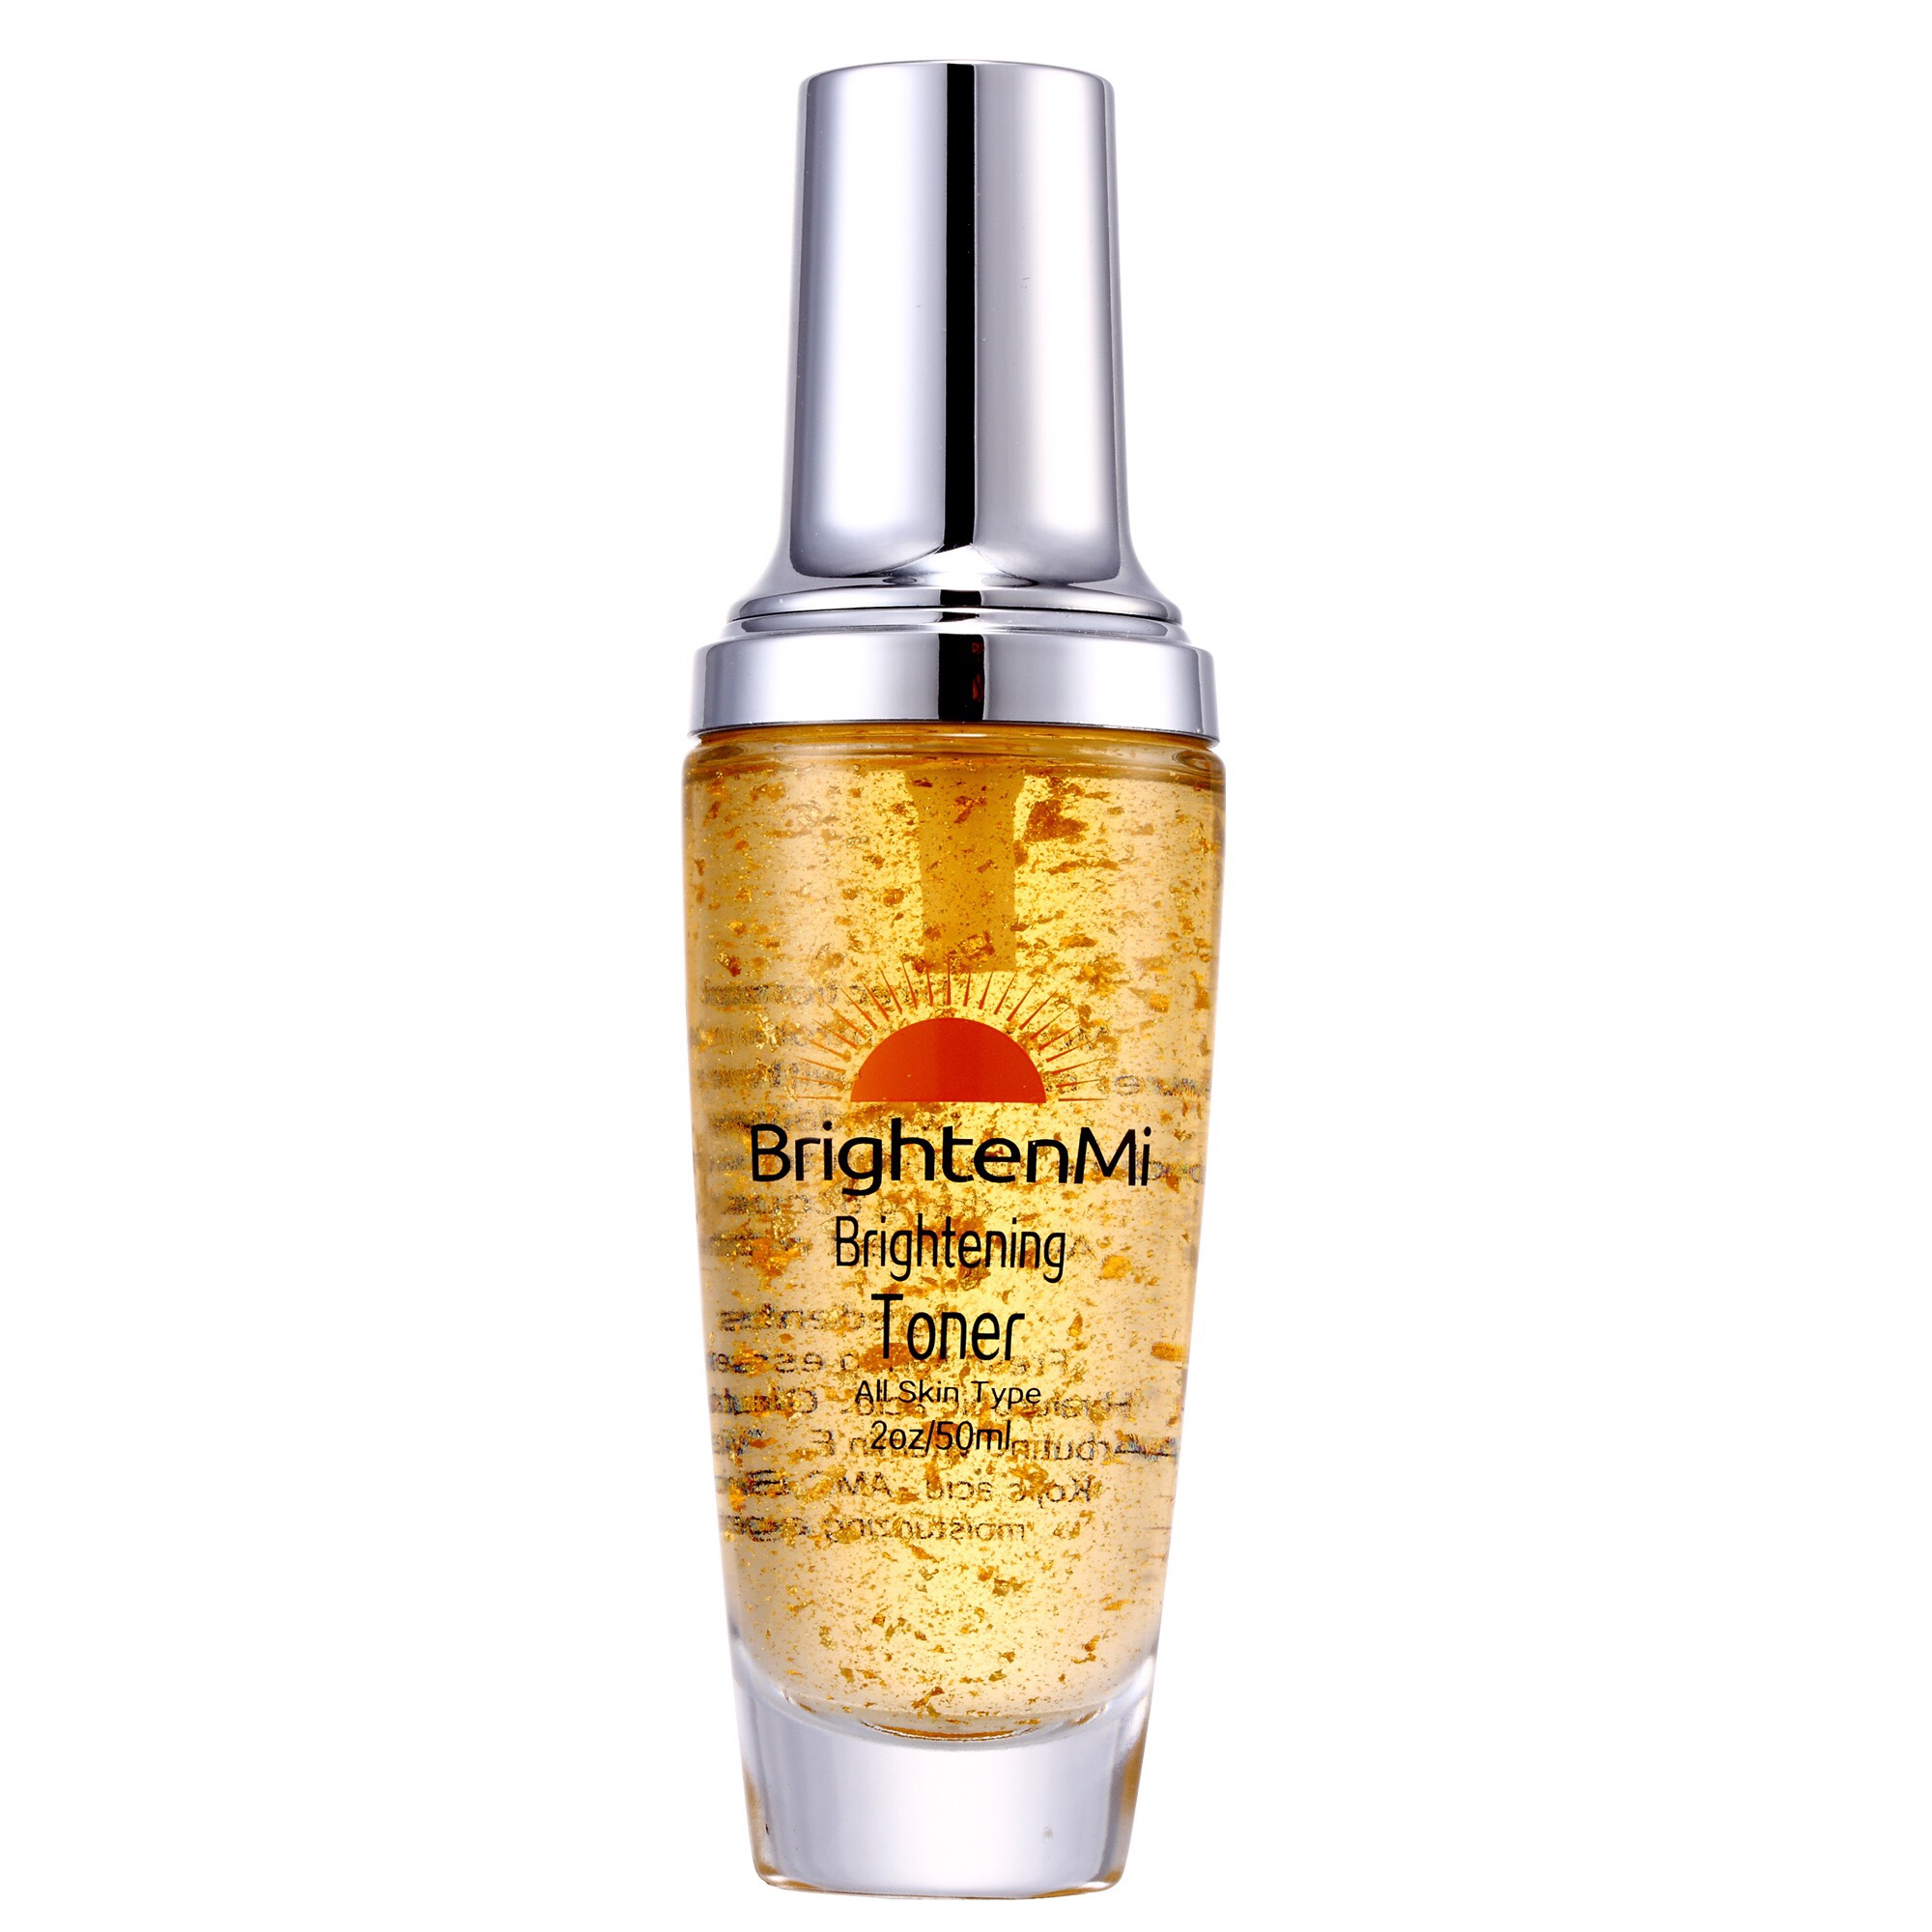 #BrigtenMiCosmetics, #SkinCare, #Cosmetics, #Cameroon, #BeautyProducts